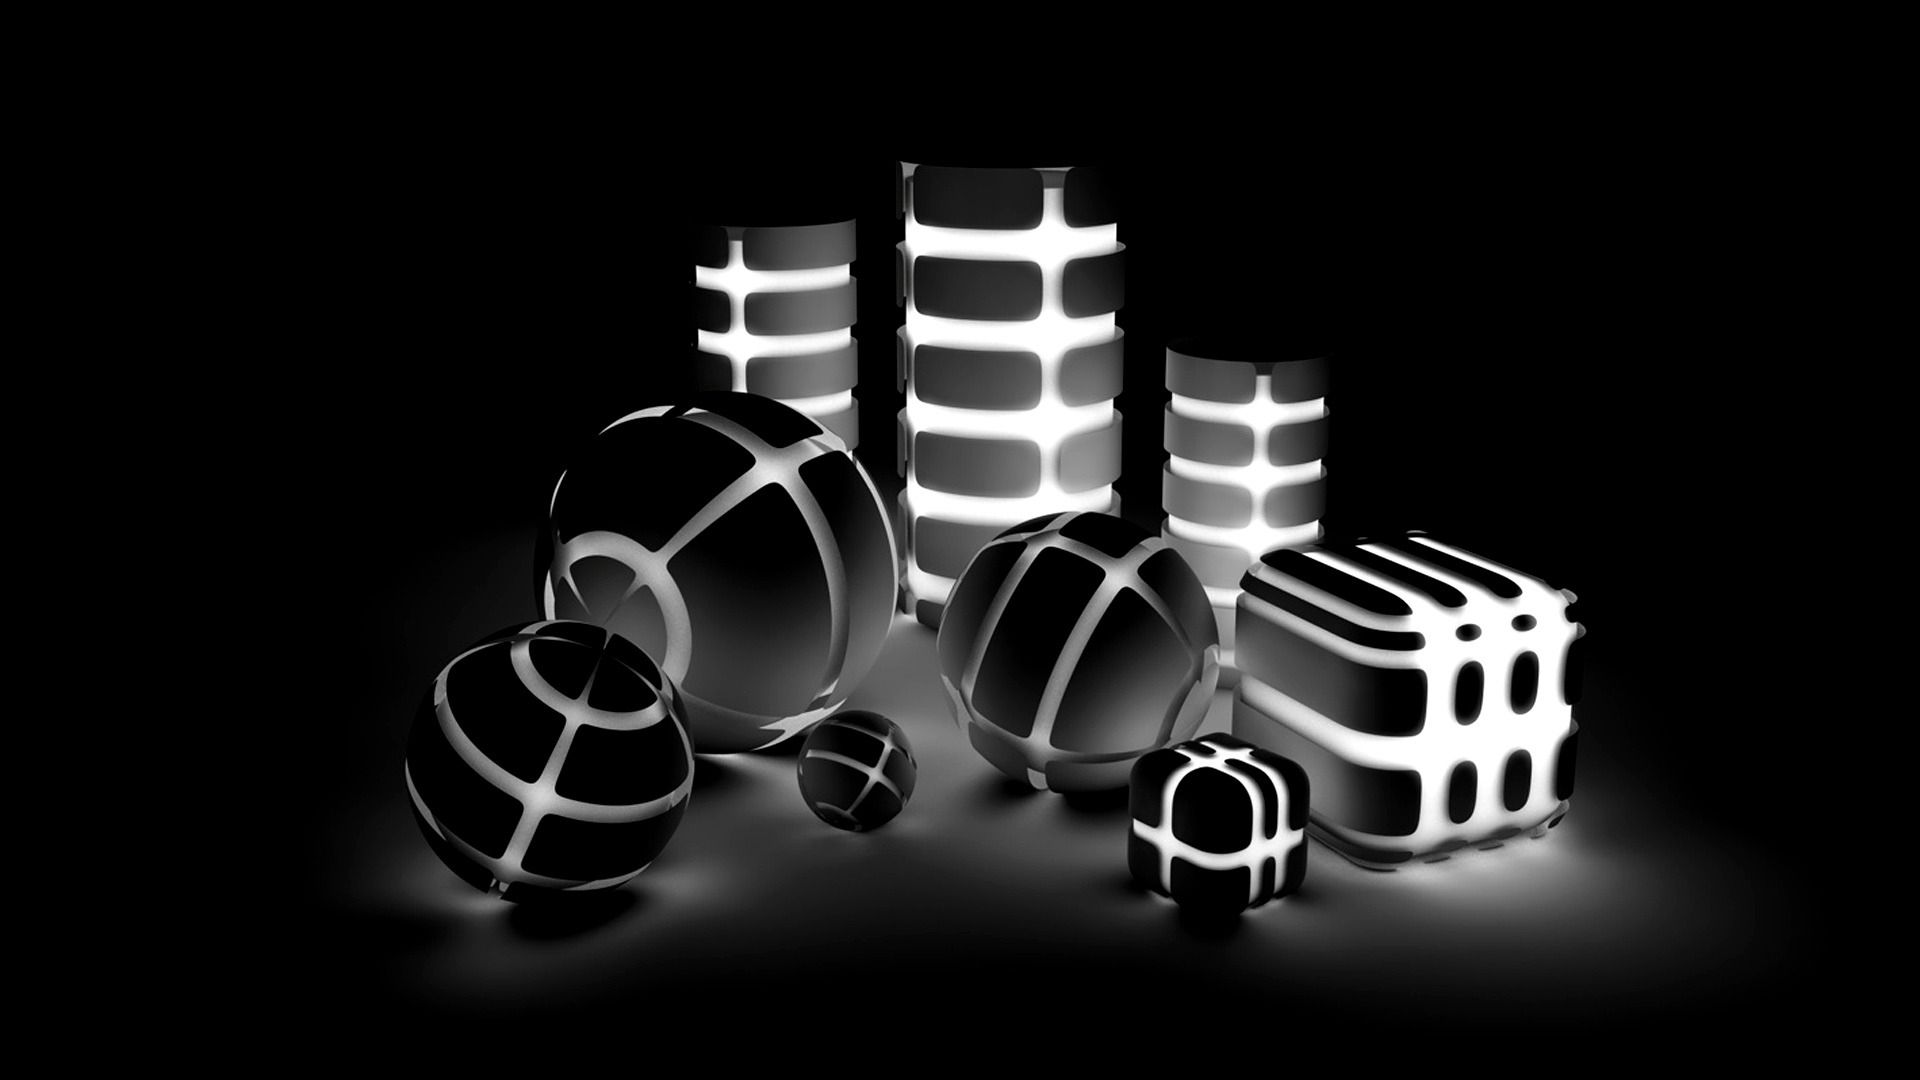 Download 3d Hd Wallpapers Black And White Abstract Wallpaper Backgrounds Black Hd Wallpaper Black Background Wallpaper